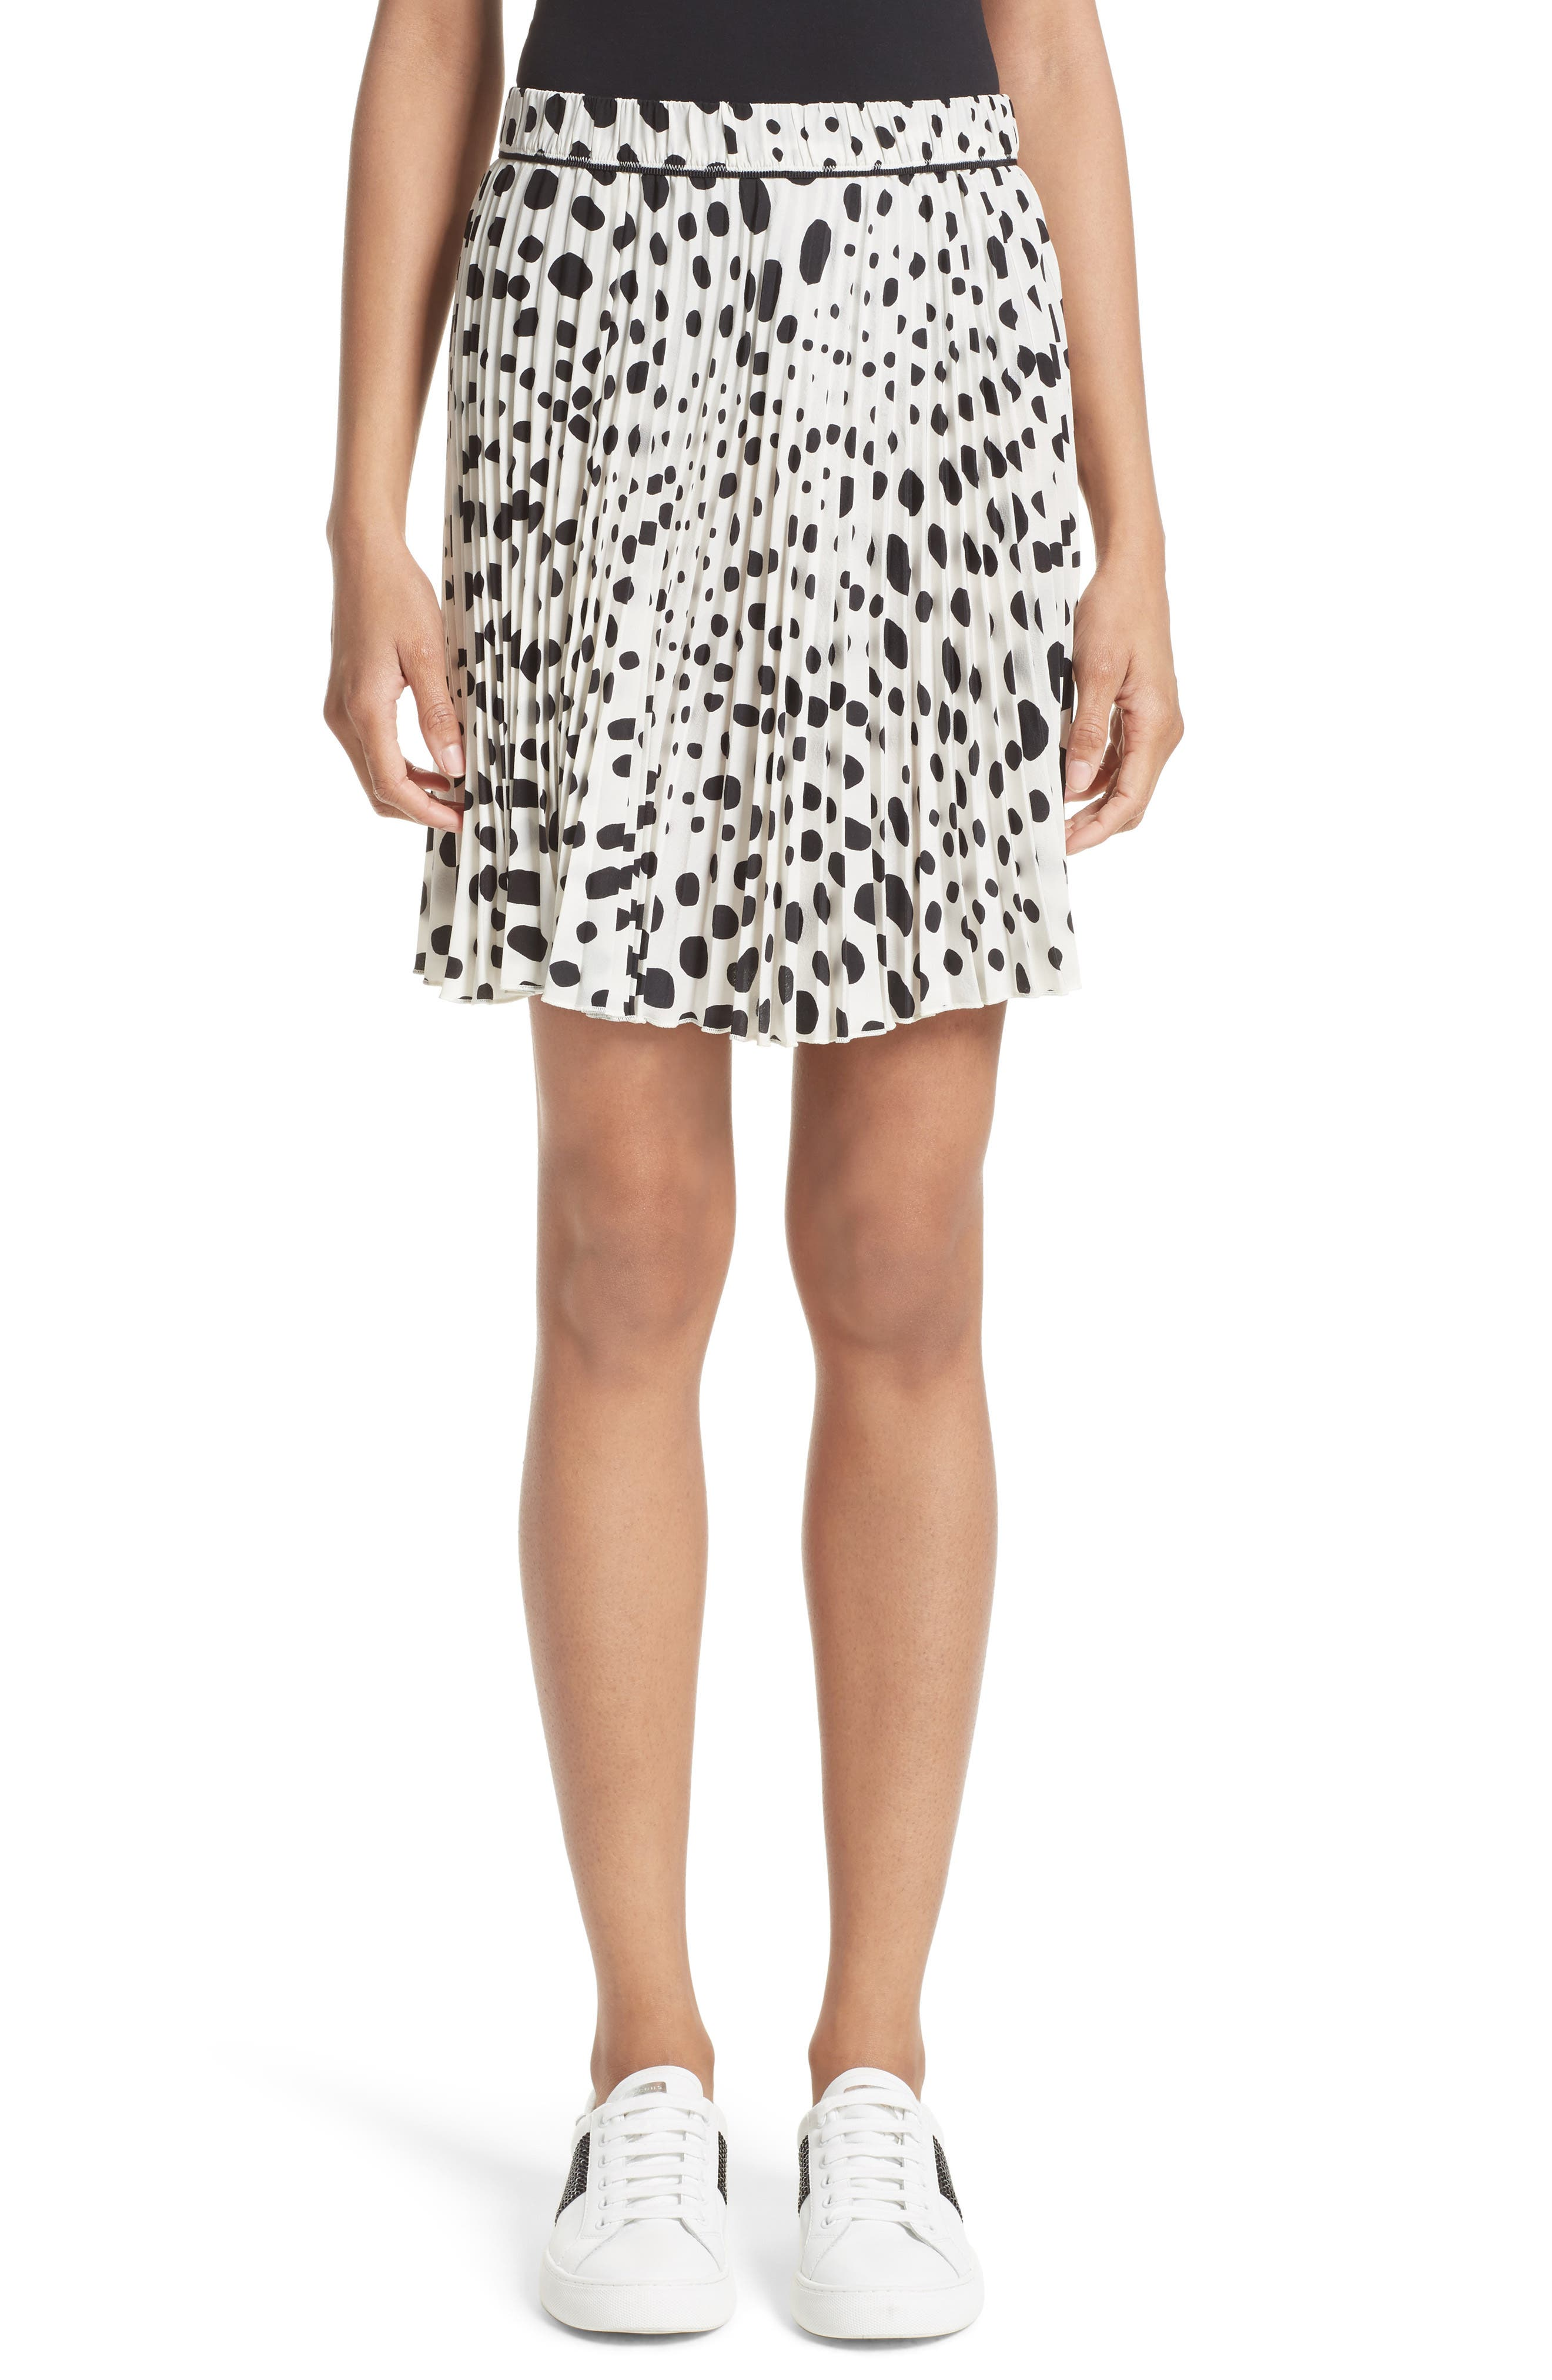 Alternate Image 1 Selected - MARC JACOBS Pleated Polka Dot Silk Skirt